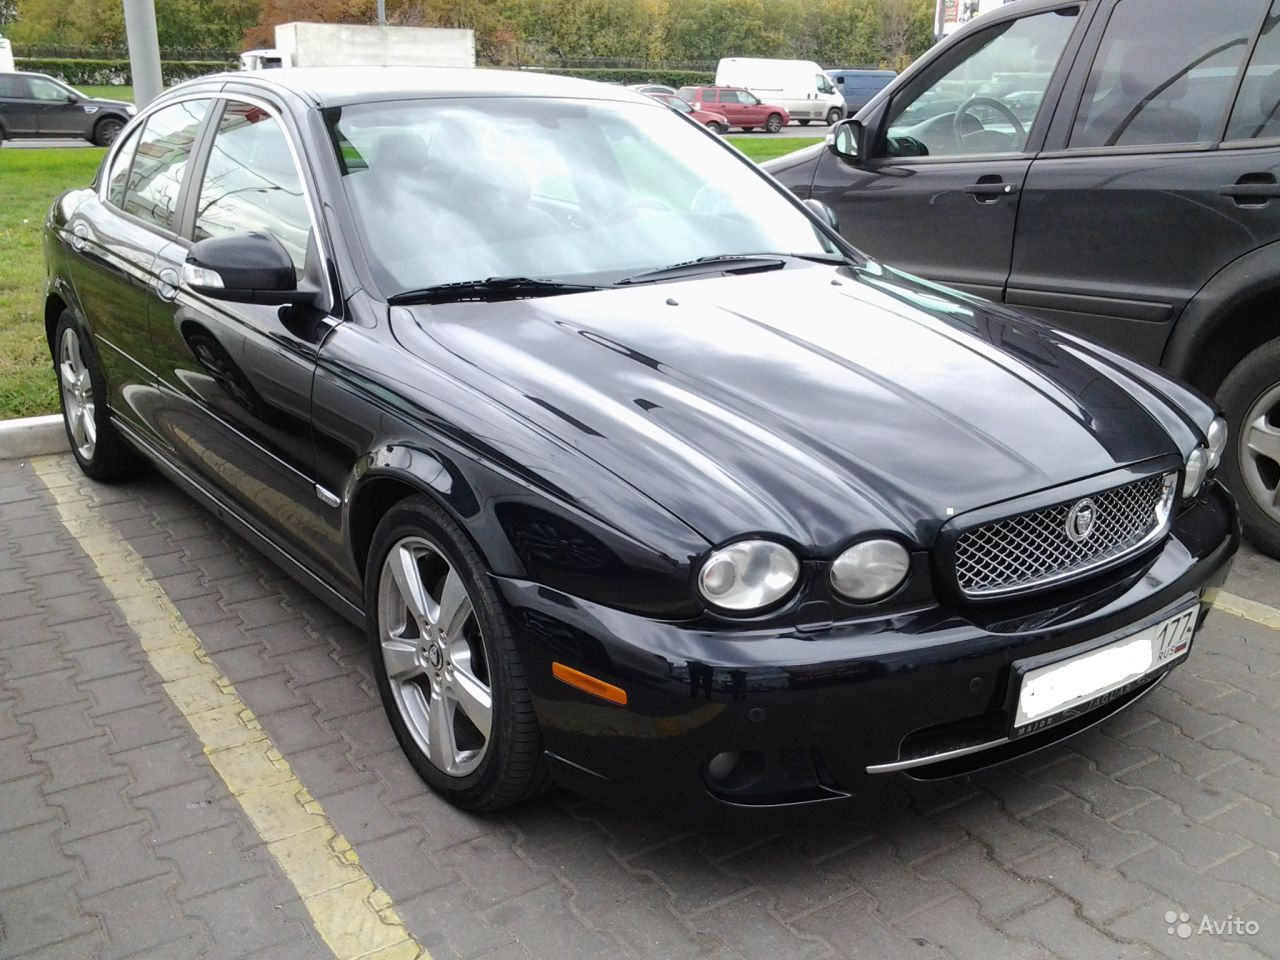 2008 jaguar x type 22 car desktop background. Black Bedroom Furniture Sets. Home Design Ideas